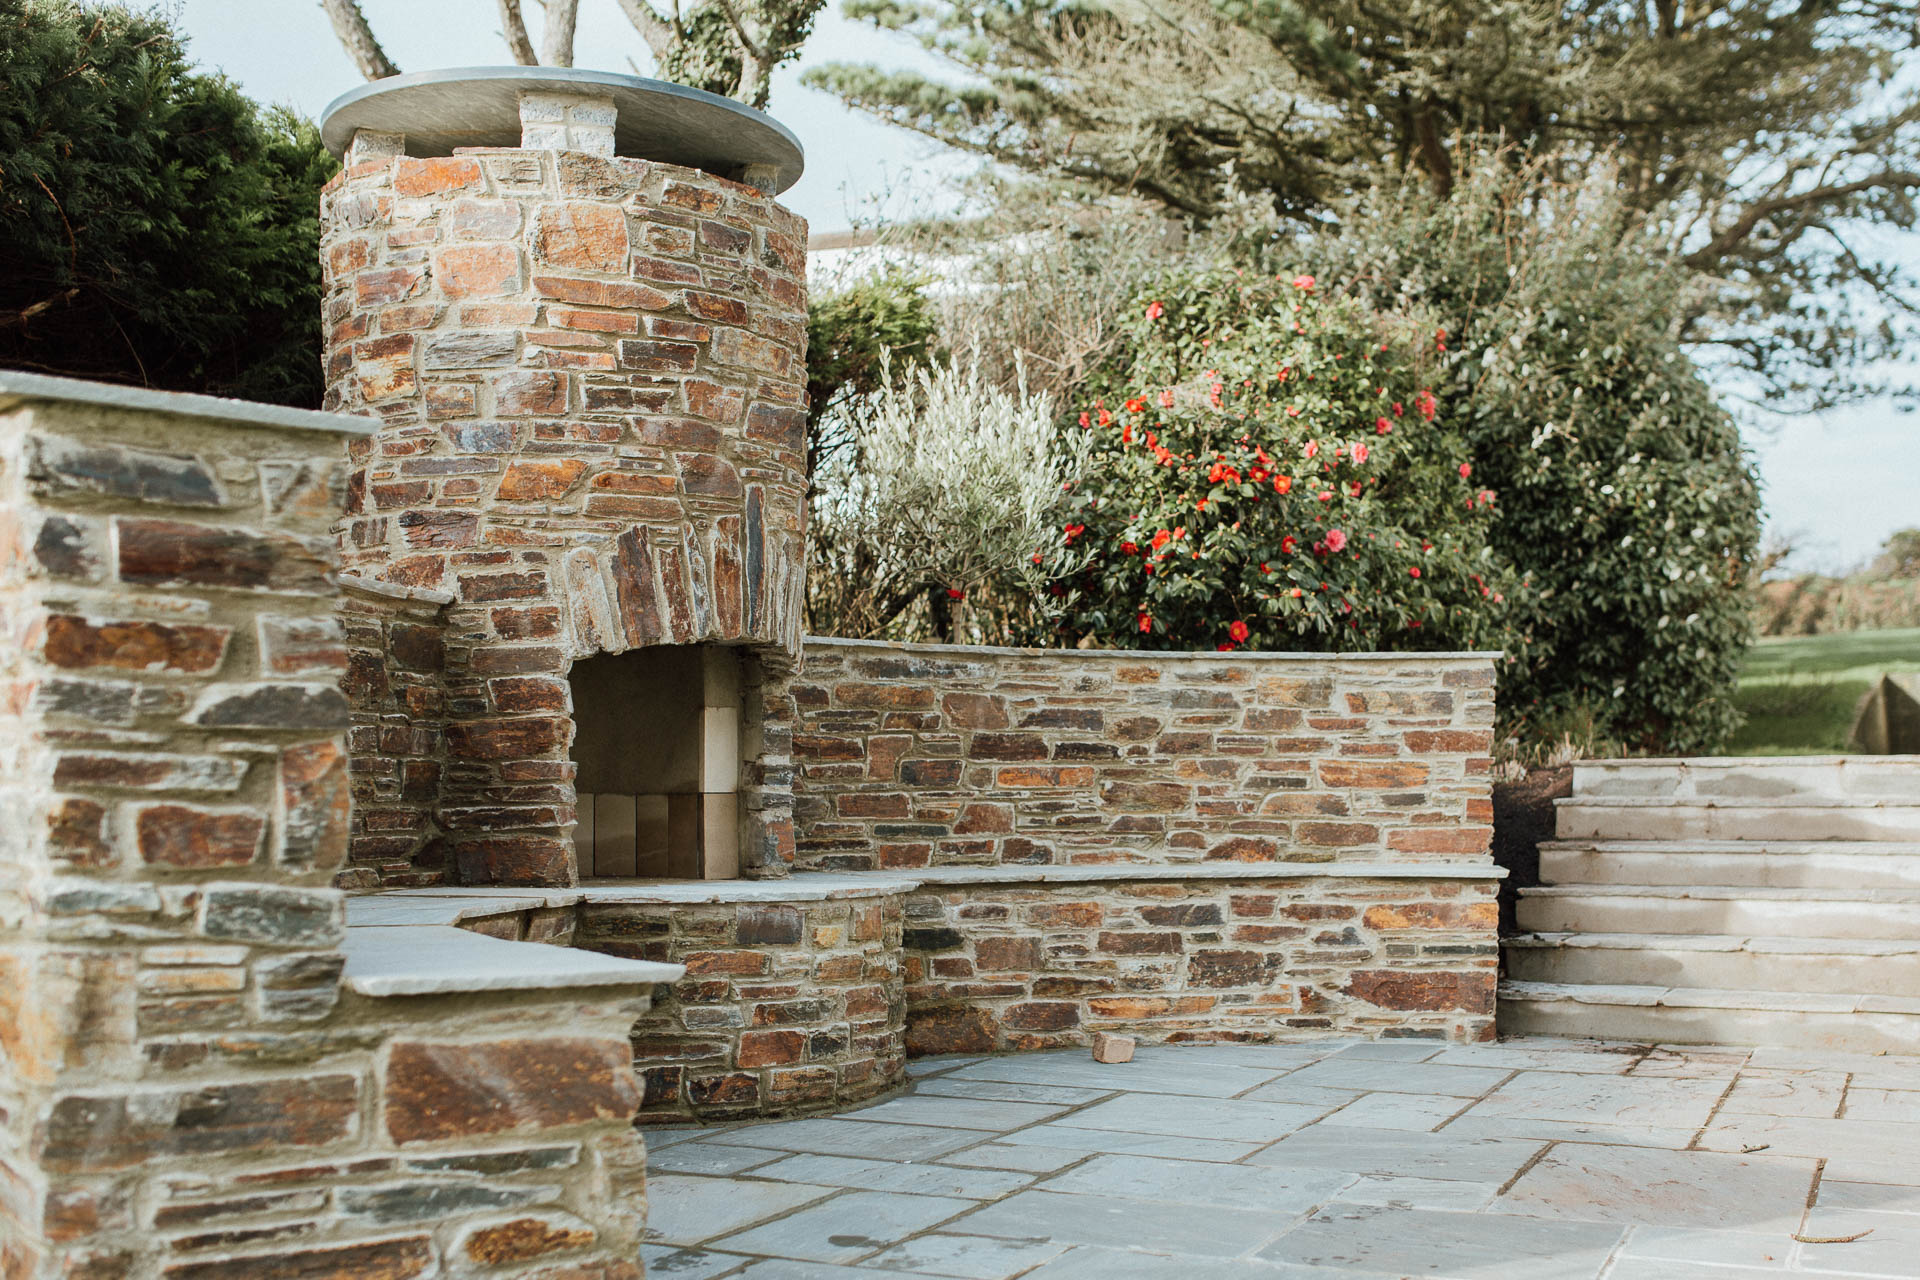 bespoke natural stone bbq and outdoor seating area in the garden of a new family home in thurlestone by devon architects andrew lethbridge associates